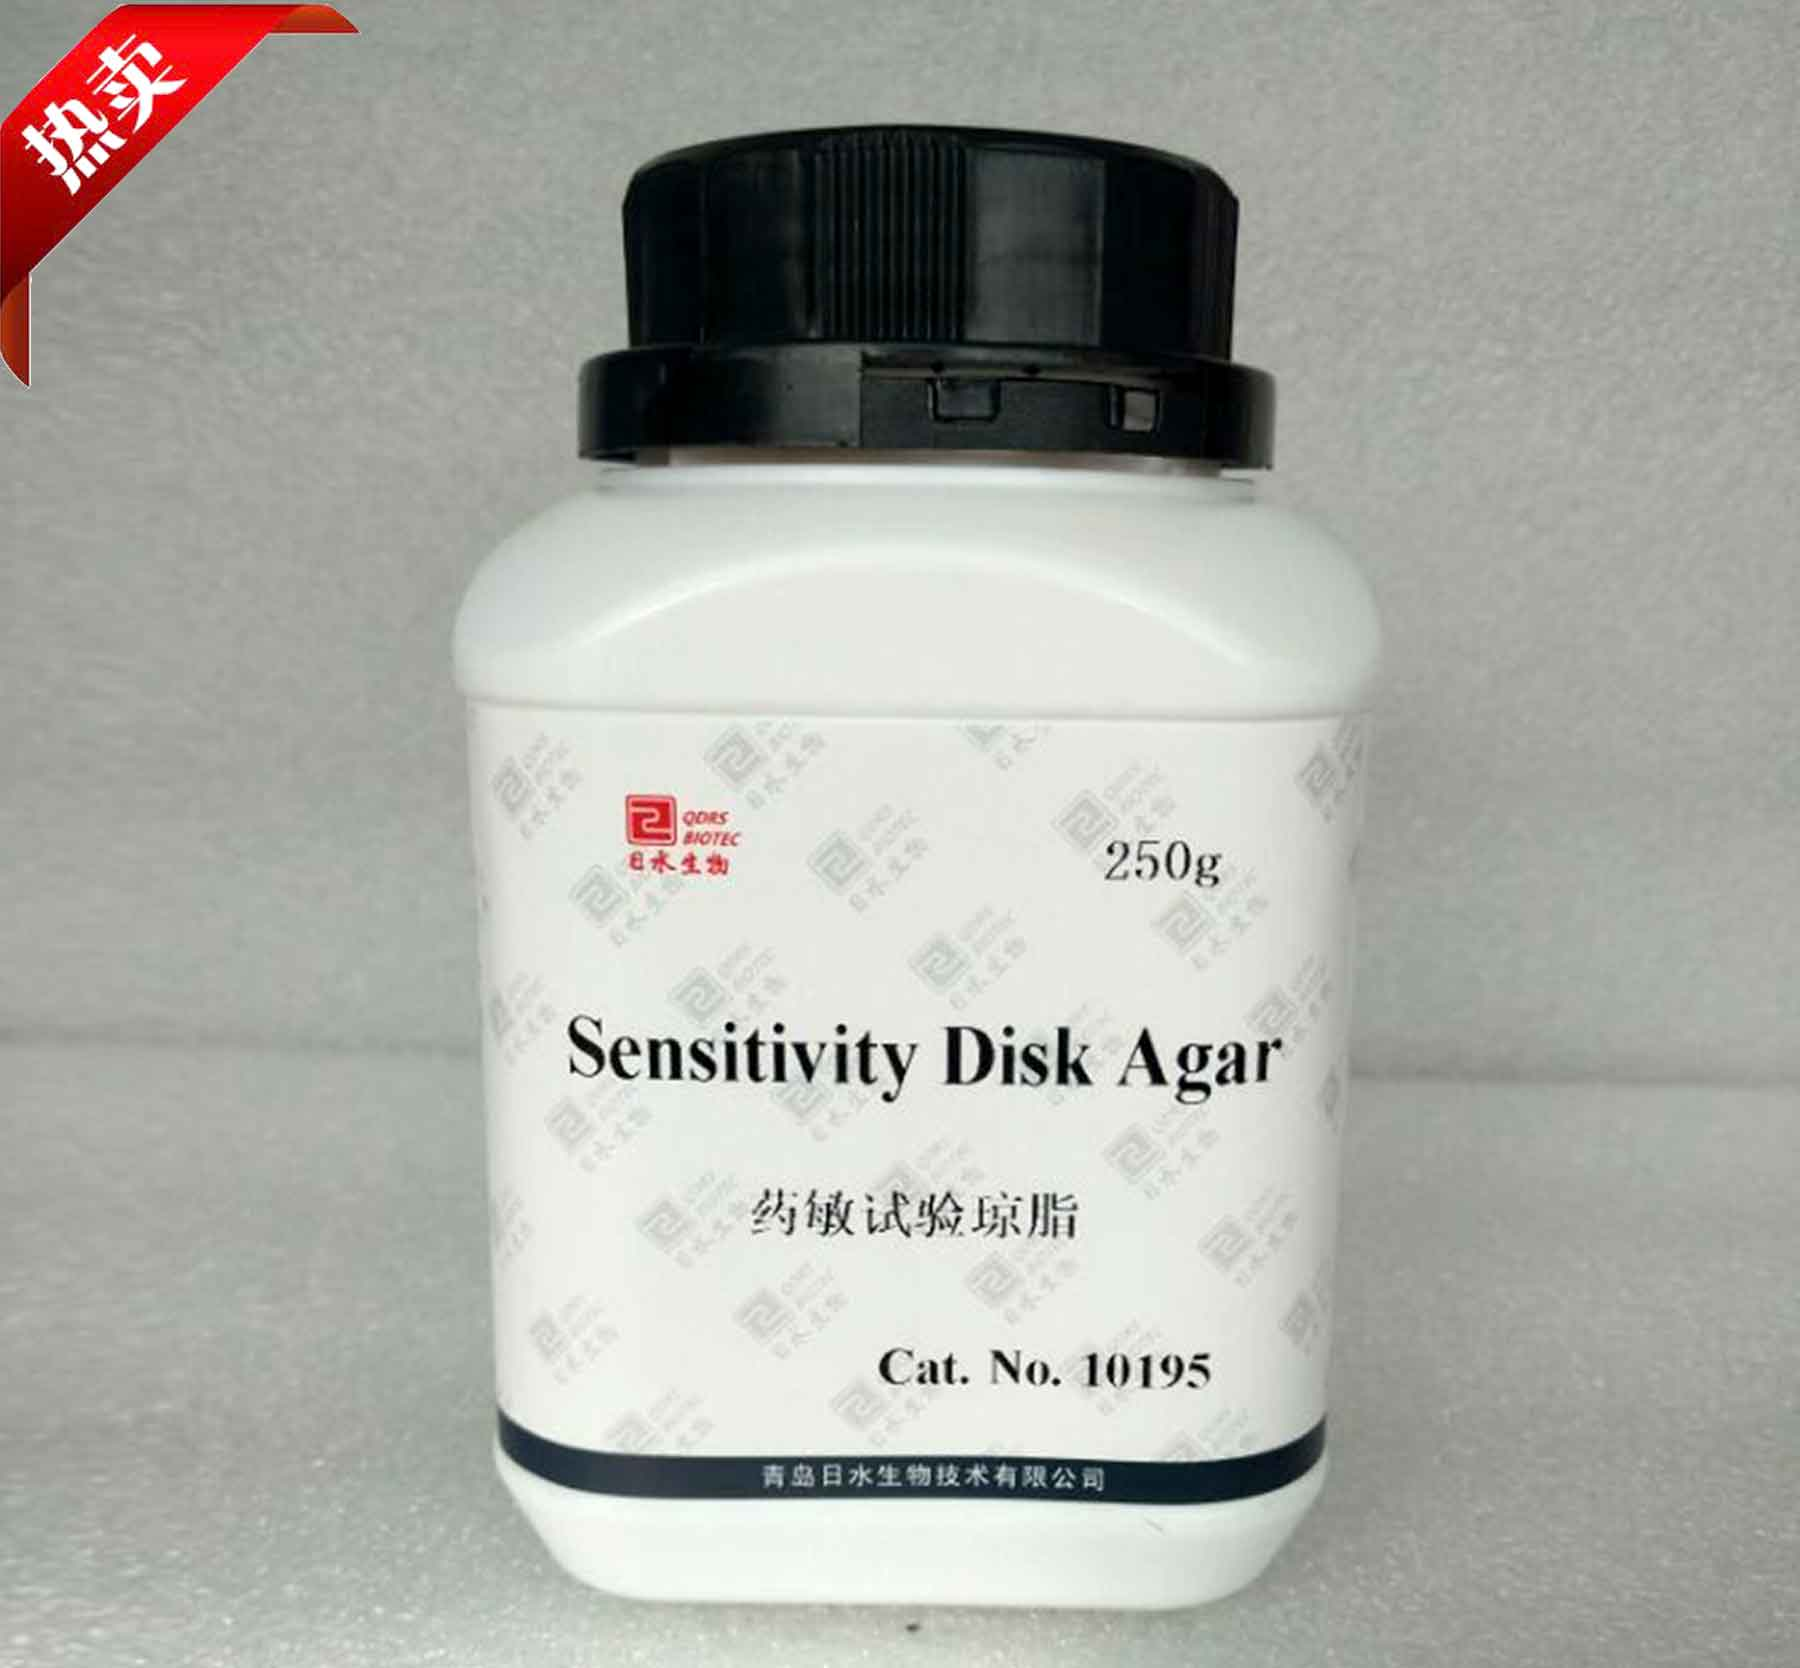 药敏试验琼脂(Sensitivity Disk Agar)